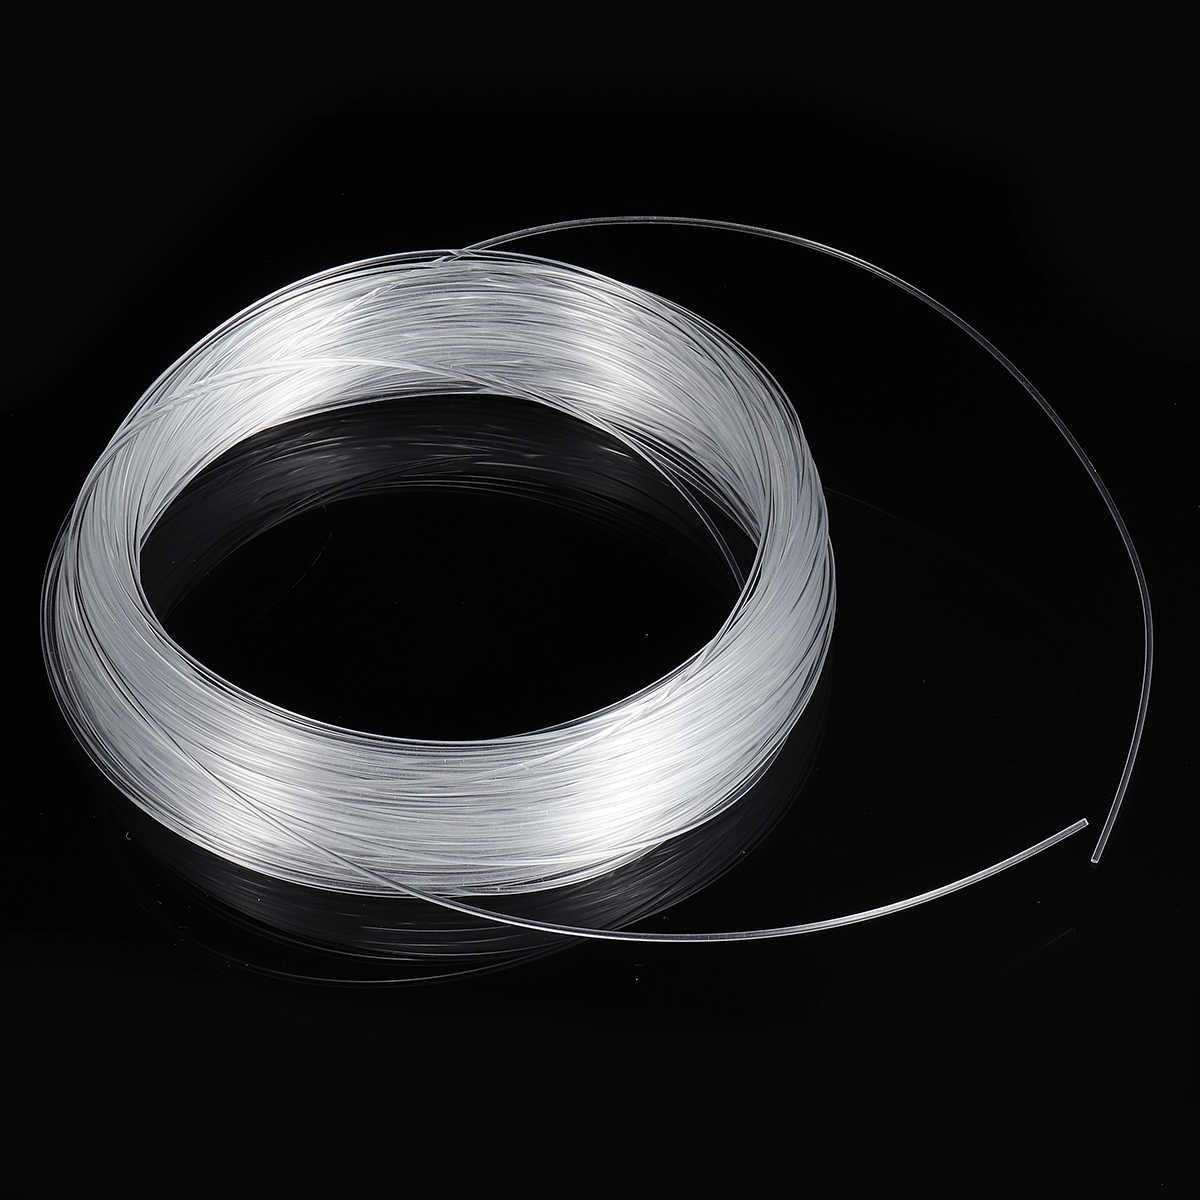 hight resolution of  clear pmma optic cable fiber light 50m 164ft end grow led light guide kit diy